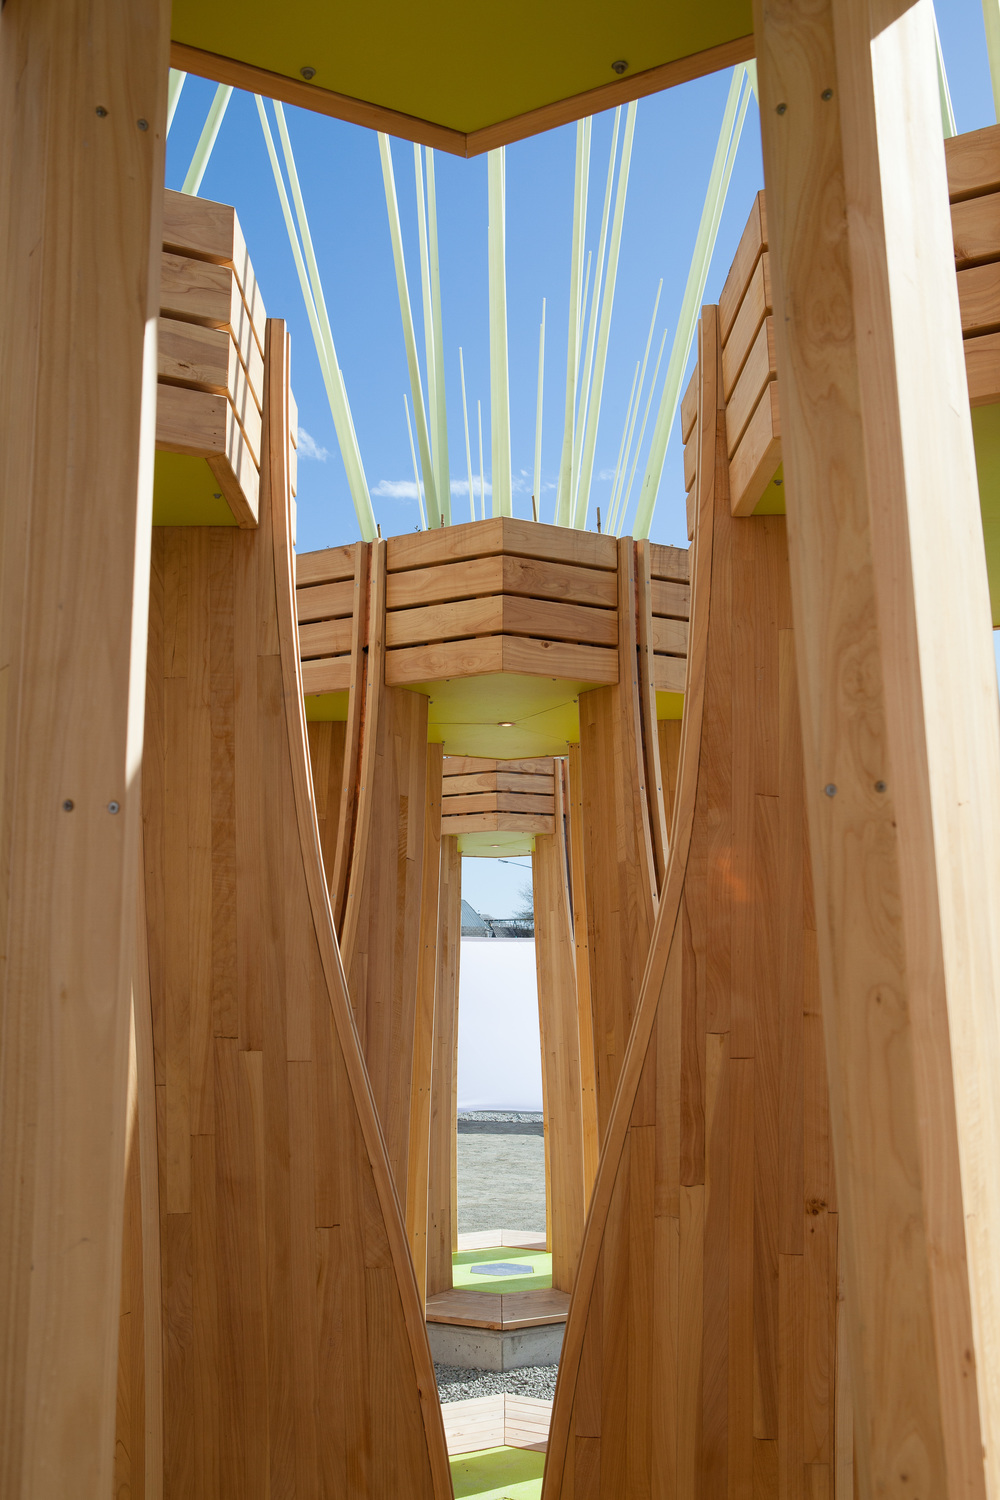 Julia_Morison_'Tree_Houses_For_Swamp_Dwellers'_2013_Photo_BridgitAnderson_CourtesyofSCAPEPublicArt5.jpg